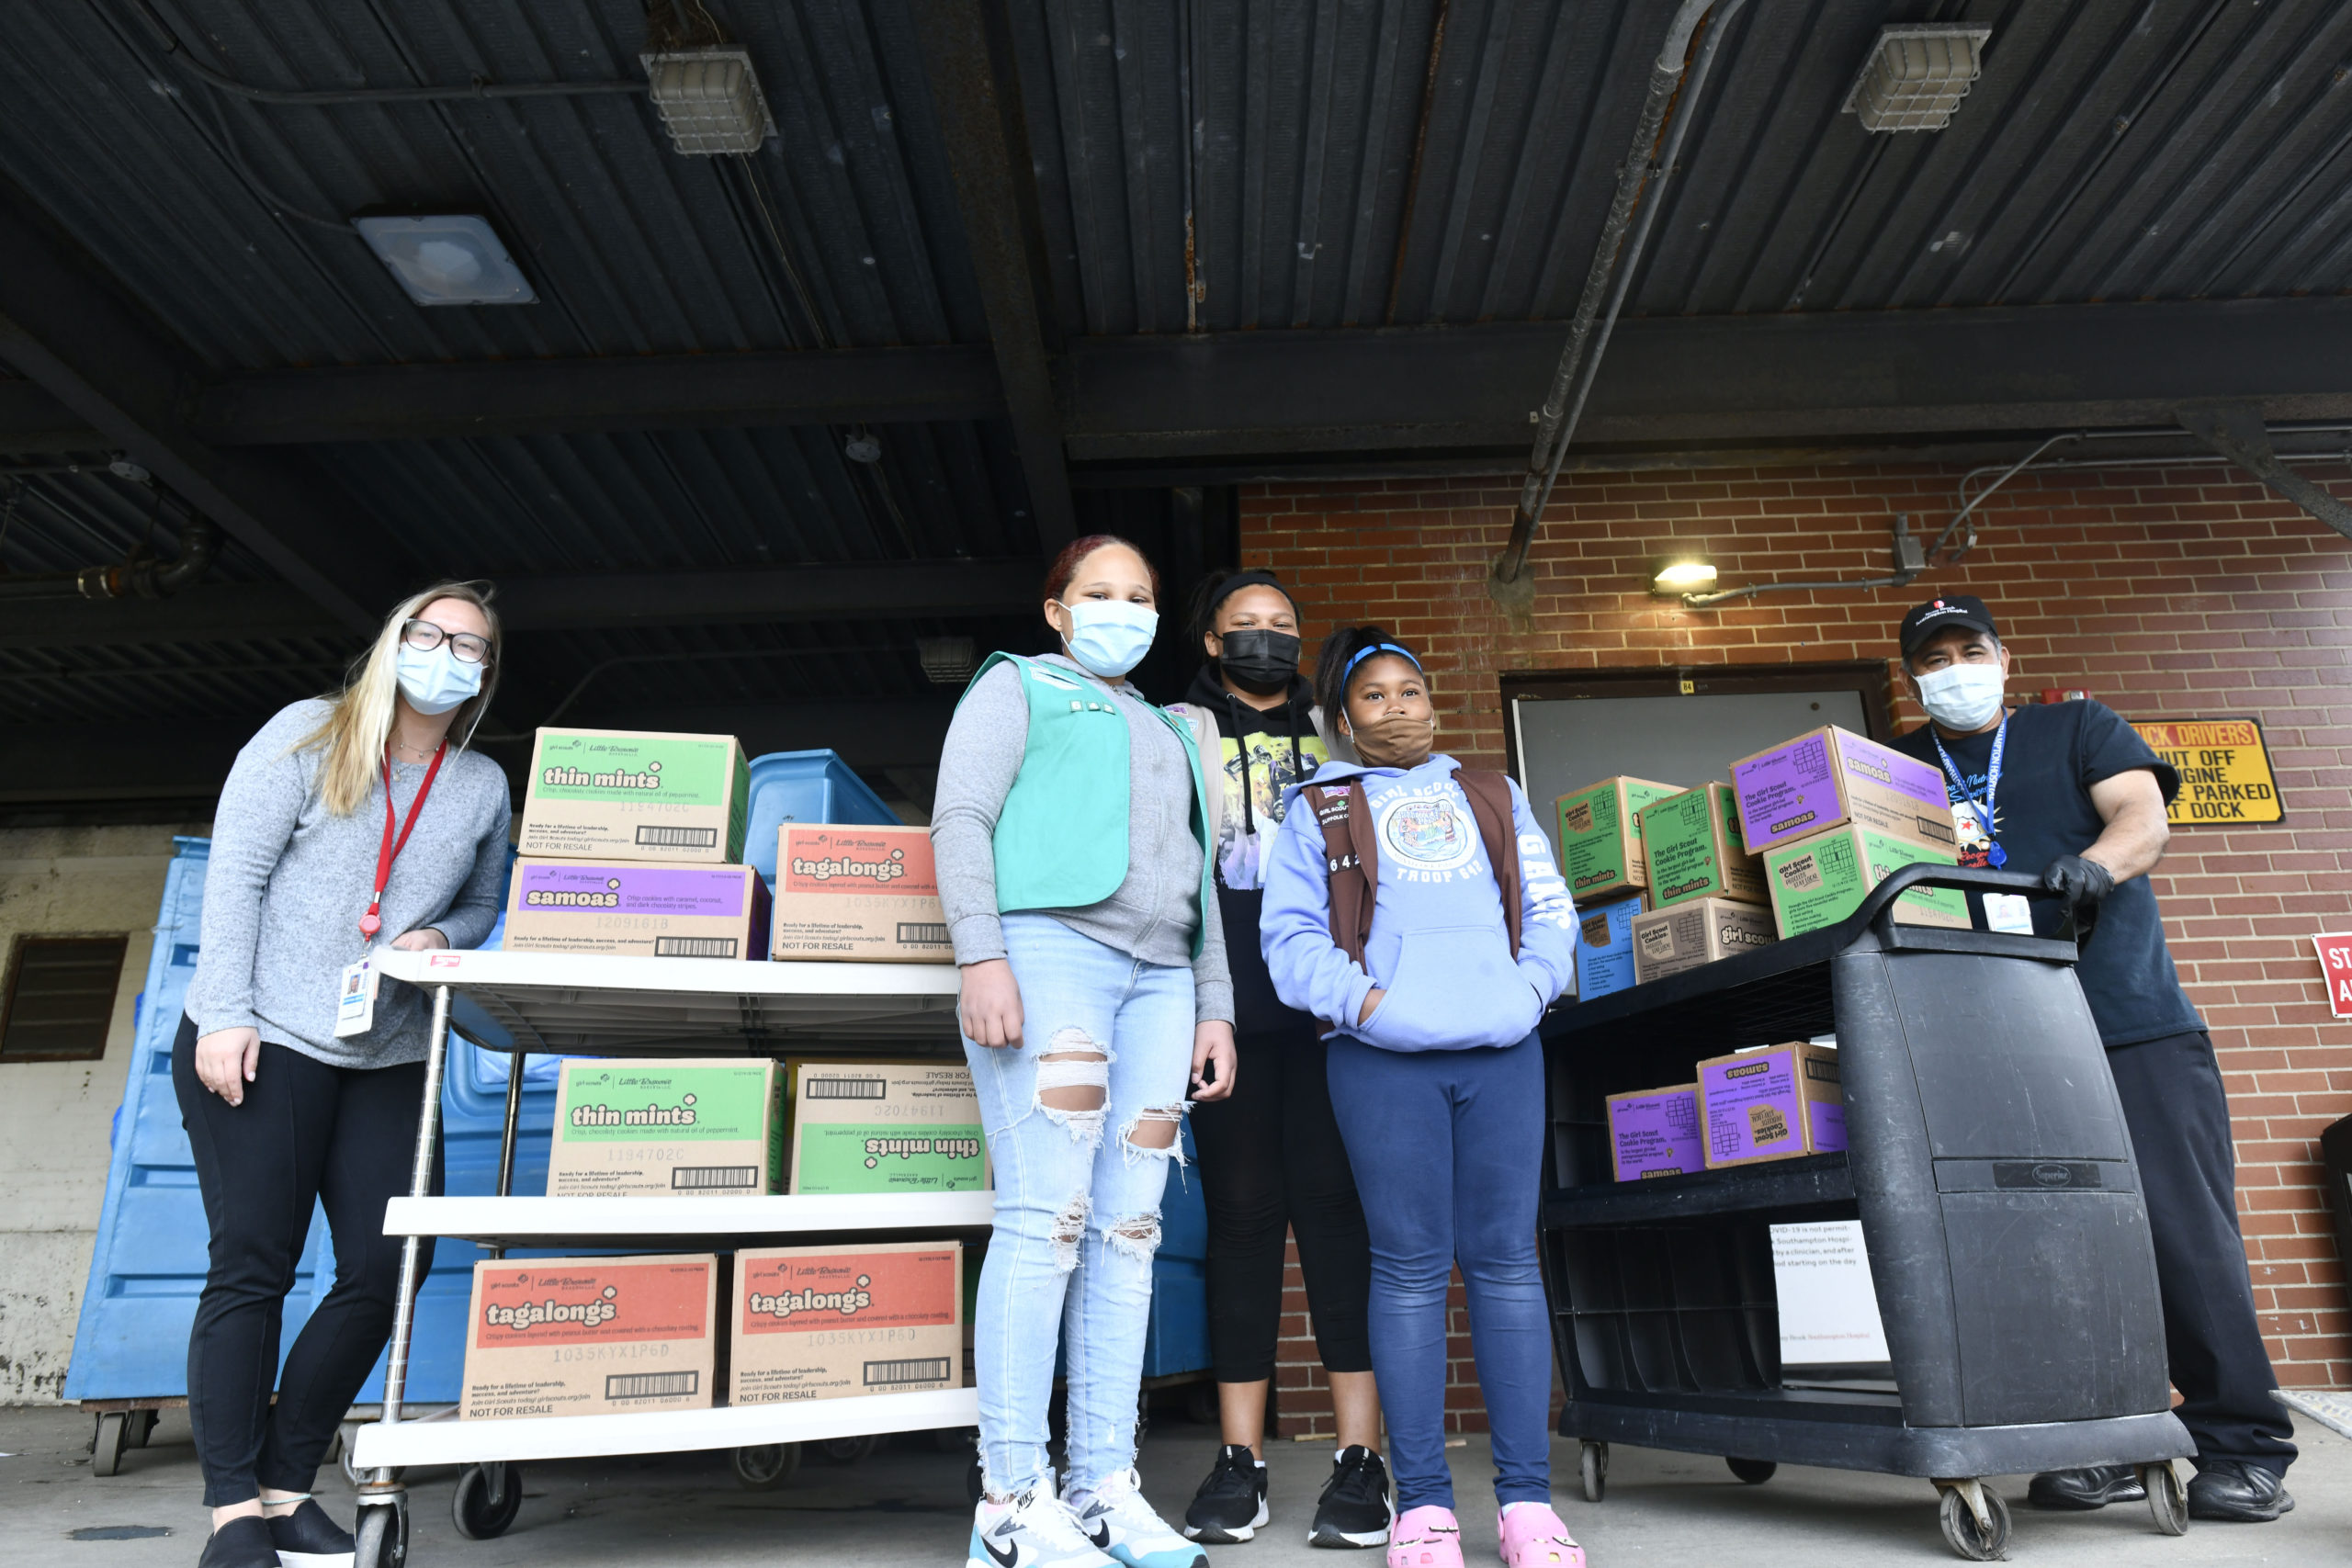 Members of Girl Scout Troop 642, Gabriella Gaines, Syvana Smith and Jordyn Smith, from the Shinnecock Nation dropped off 300 boxes (25 cases) of Girls Scout Cookies for the employees at Stony Brook Southampton Hospital on Sunday afternoon. Helping the girls unload are hospital employees Victoria Stanek and Cesar Flores.  DANA SHAW